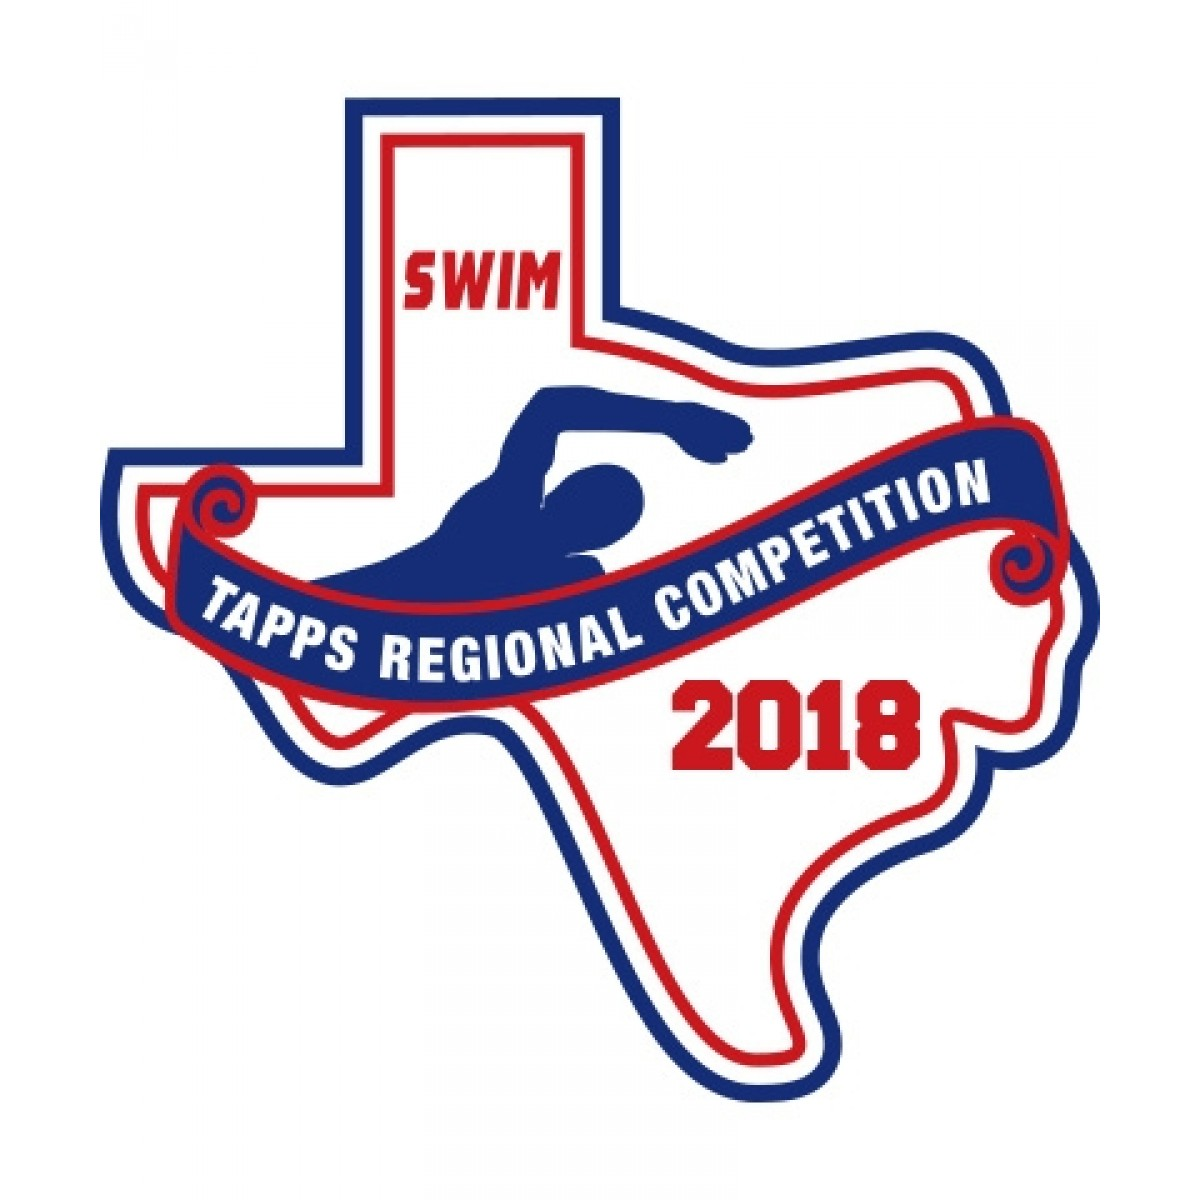 Chenille 2018 TAPPS Swim Regional Patch